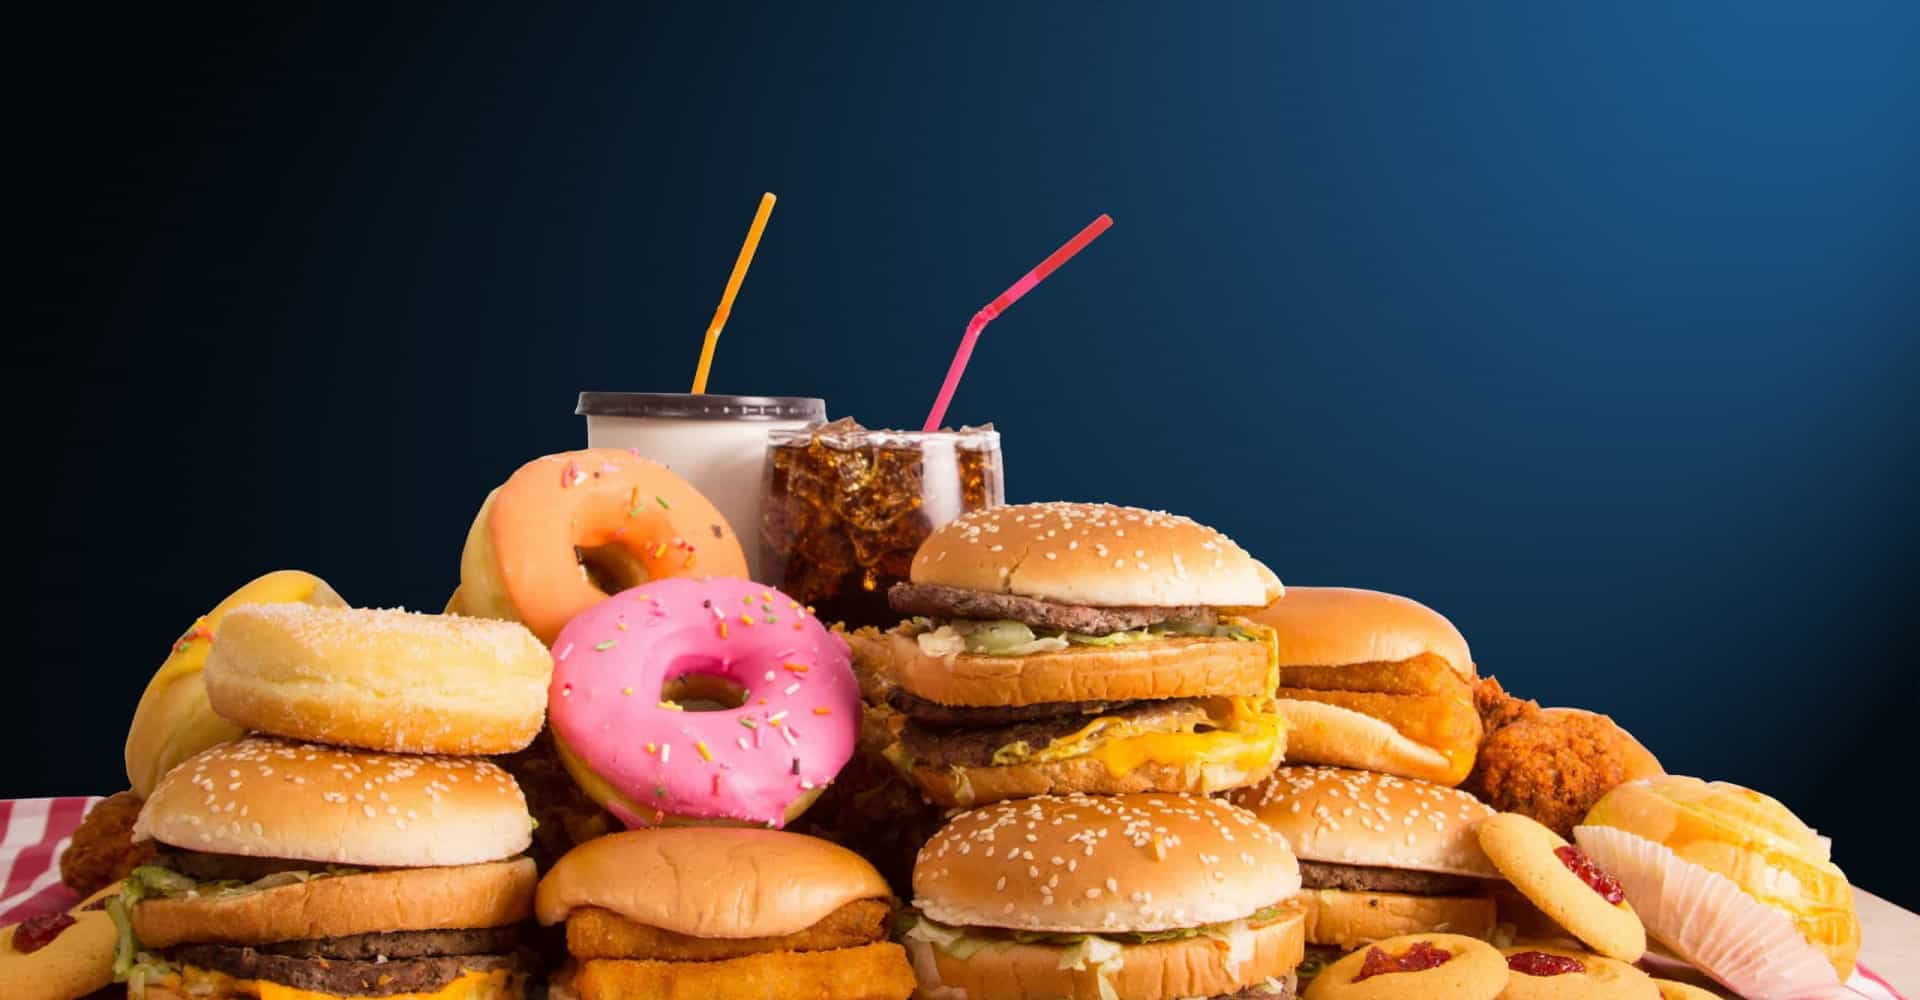 It's Junk Food Day! Celebrate discovering amazing facts about this type of food